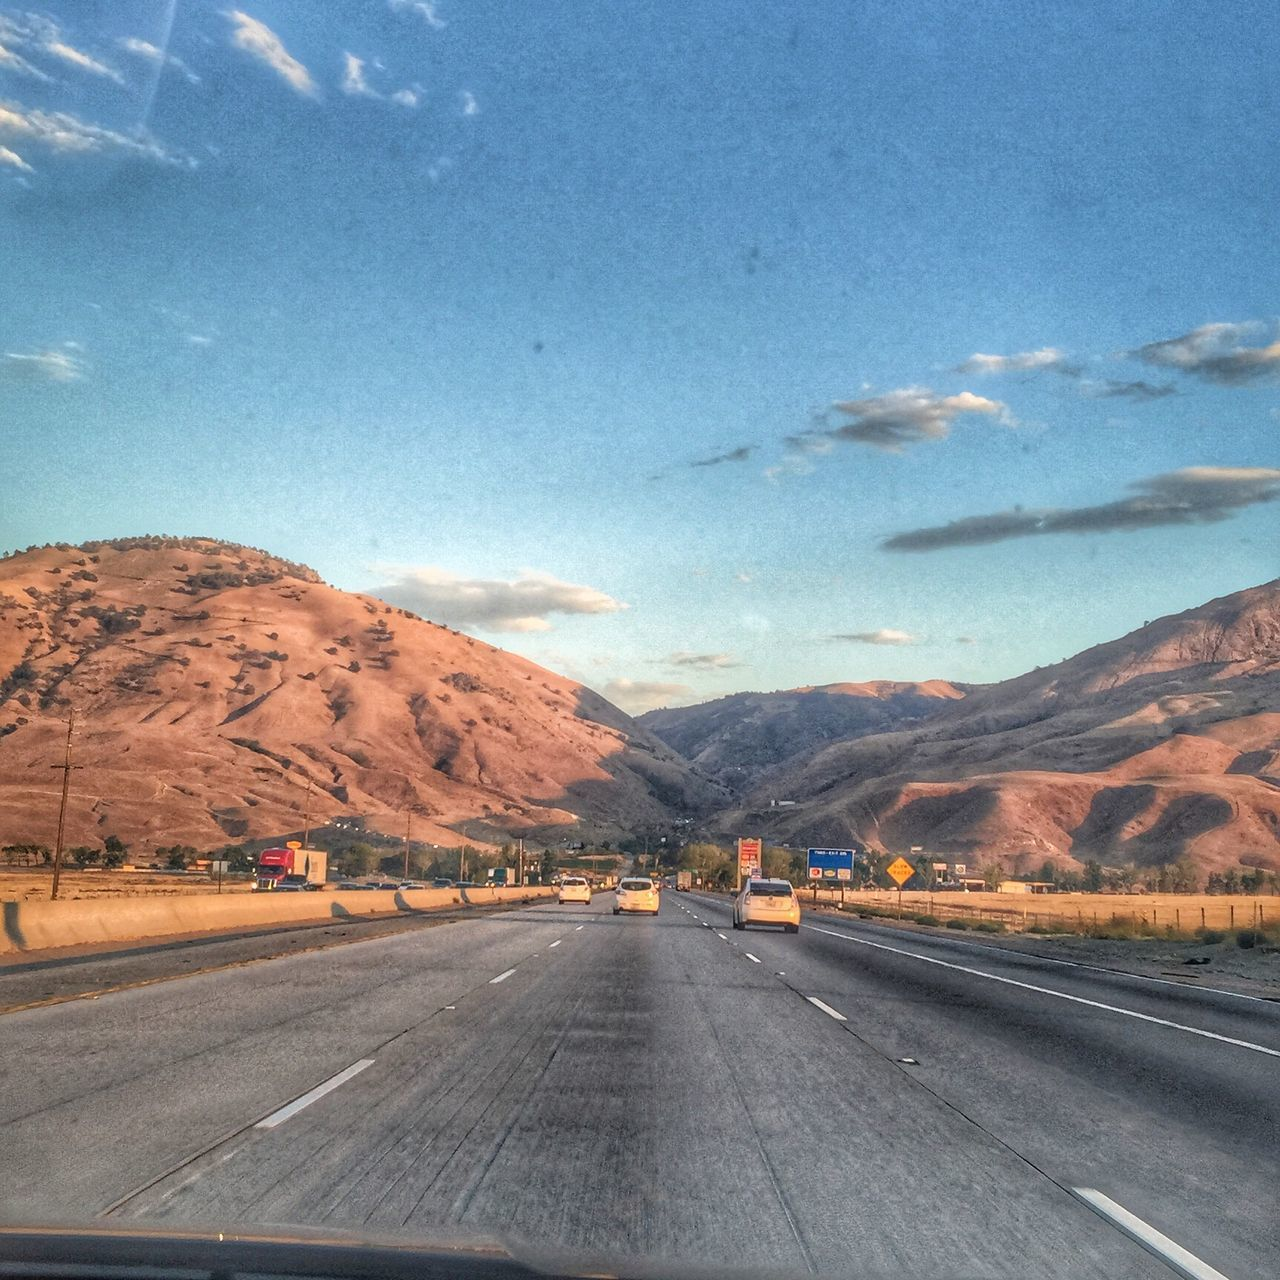 God's Creation! Weekends Mountains Friday's Travel Road Trip Getaway  Photos Bluesky Pricelessmoments  Peaceful